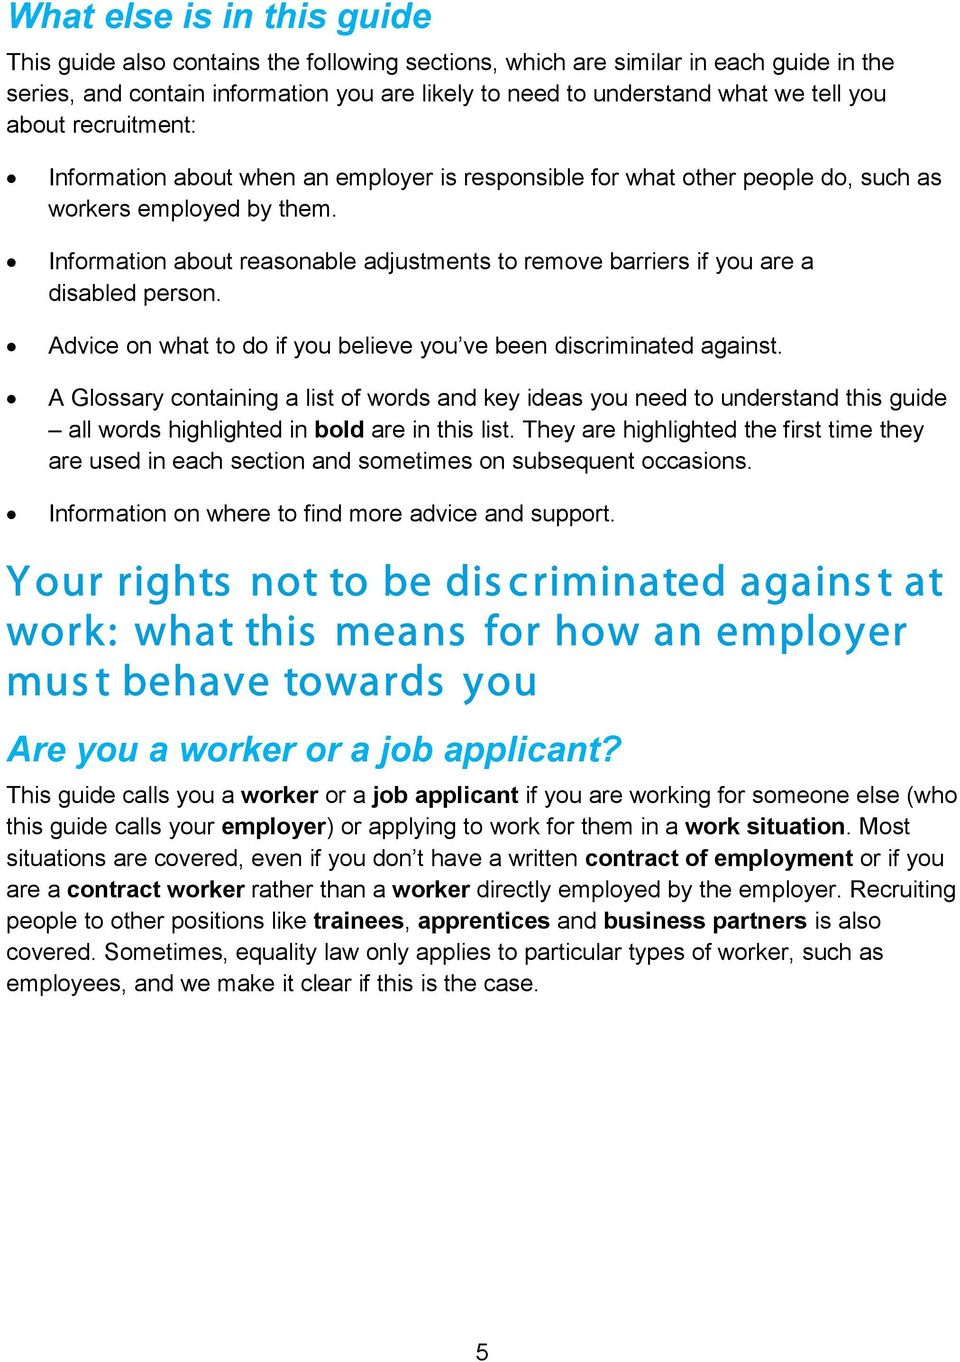 Information about reasonable adjustments to remove barriers if you are a disabled person. Advice on what to do if you believe you ve been discriminated against.